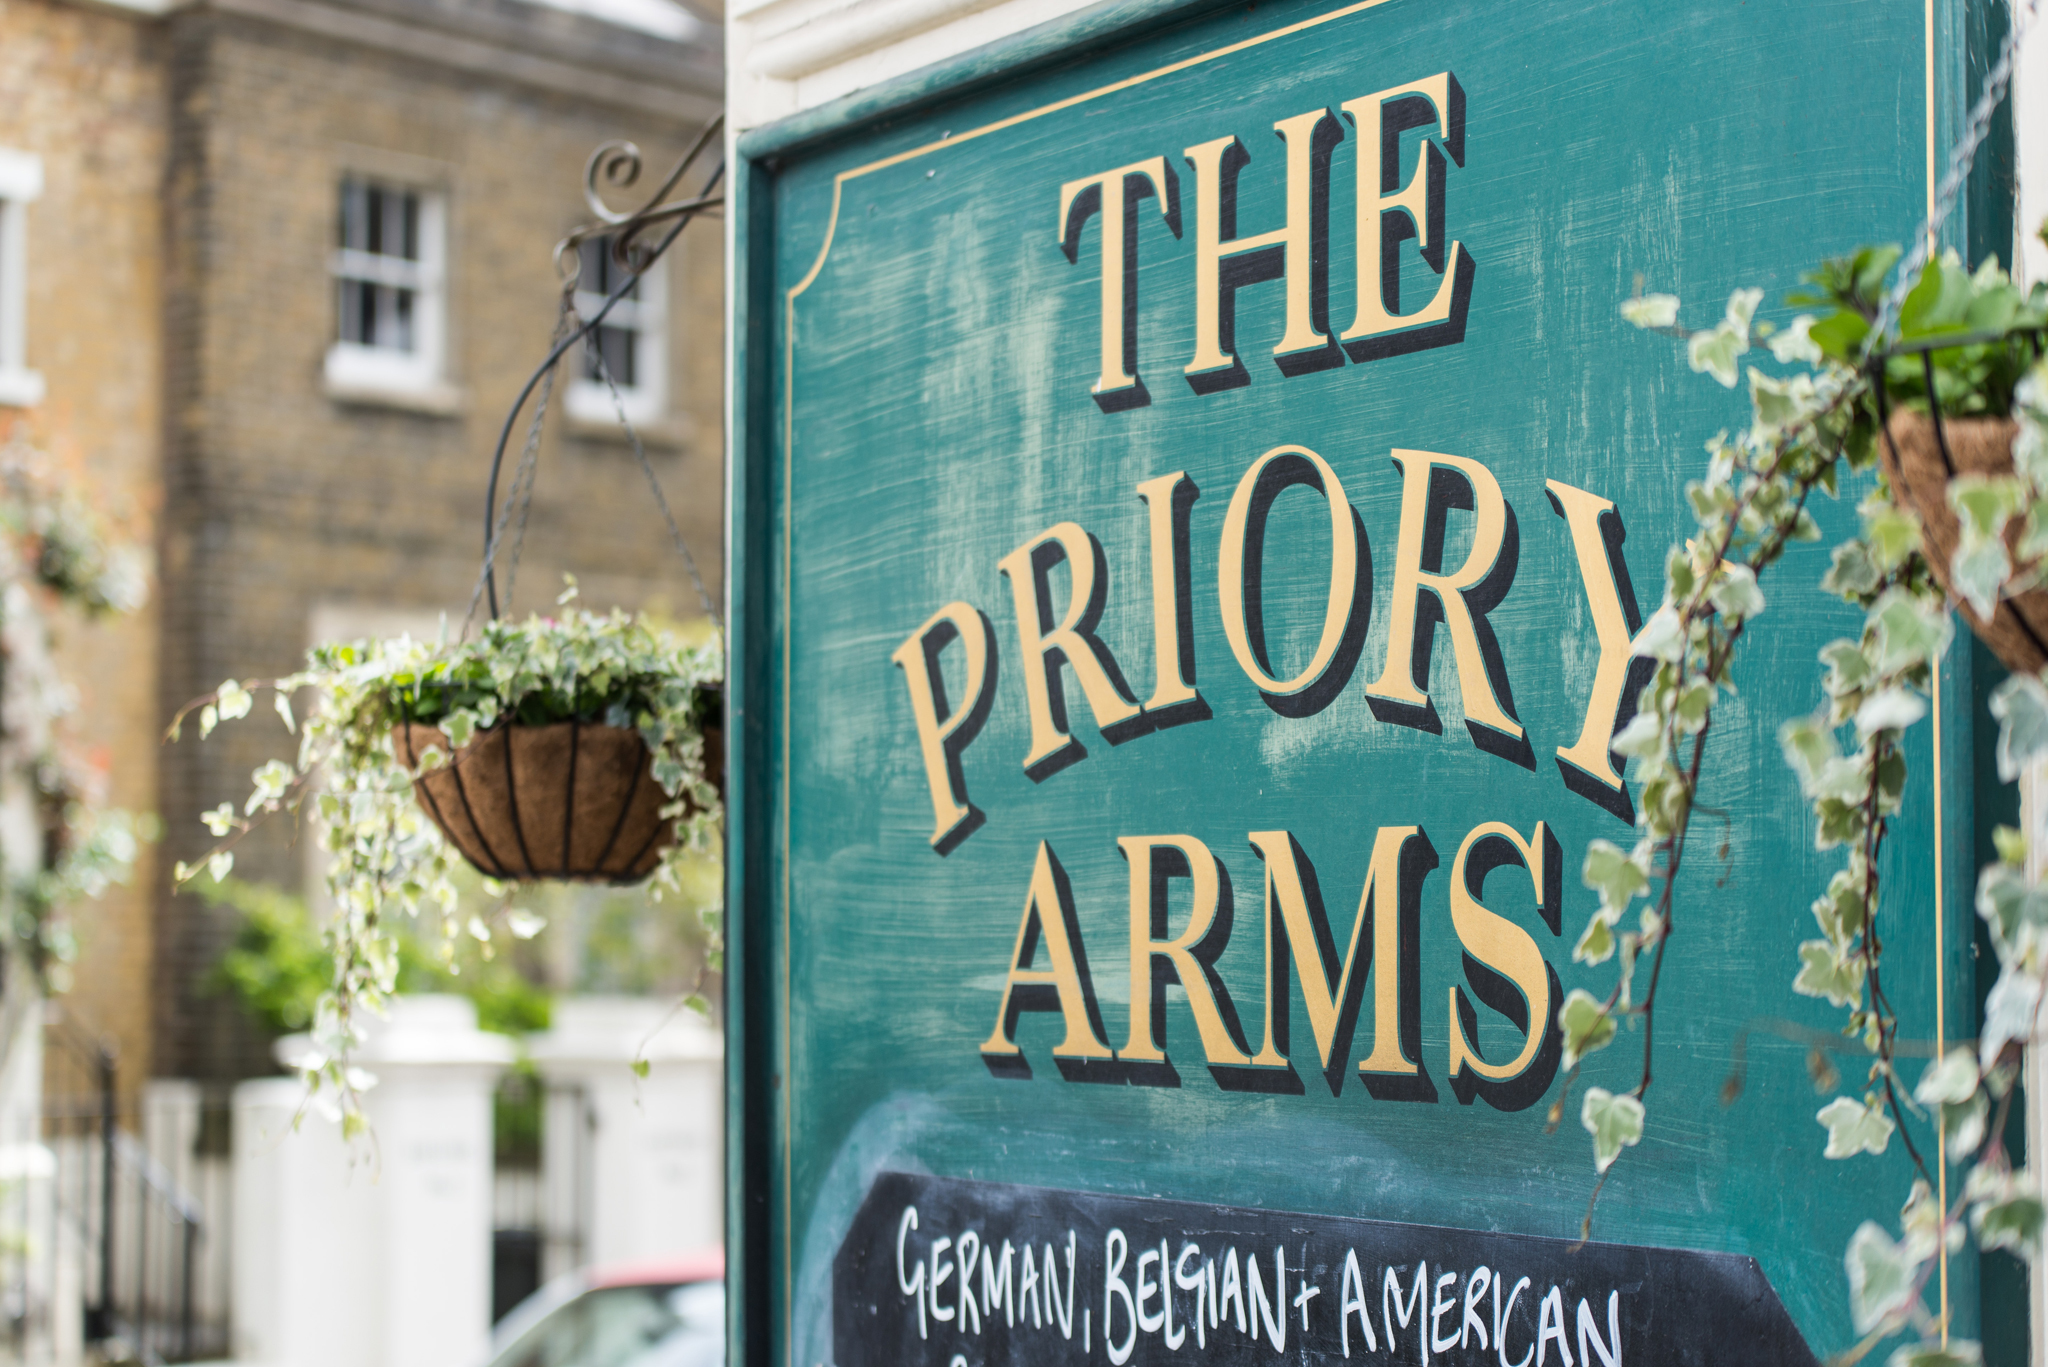 Priory Arms